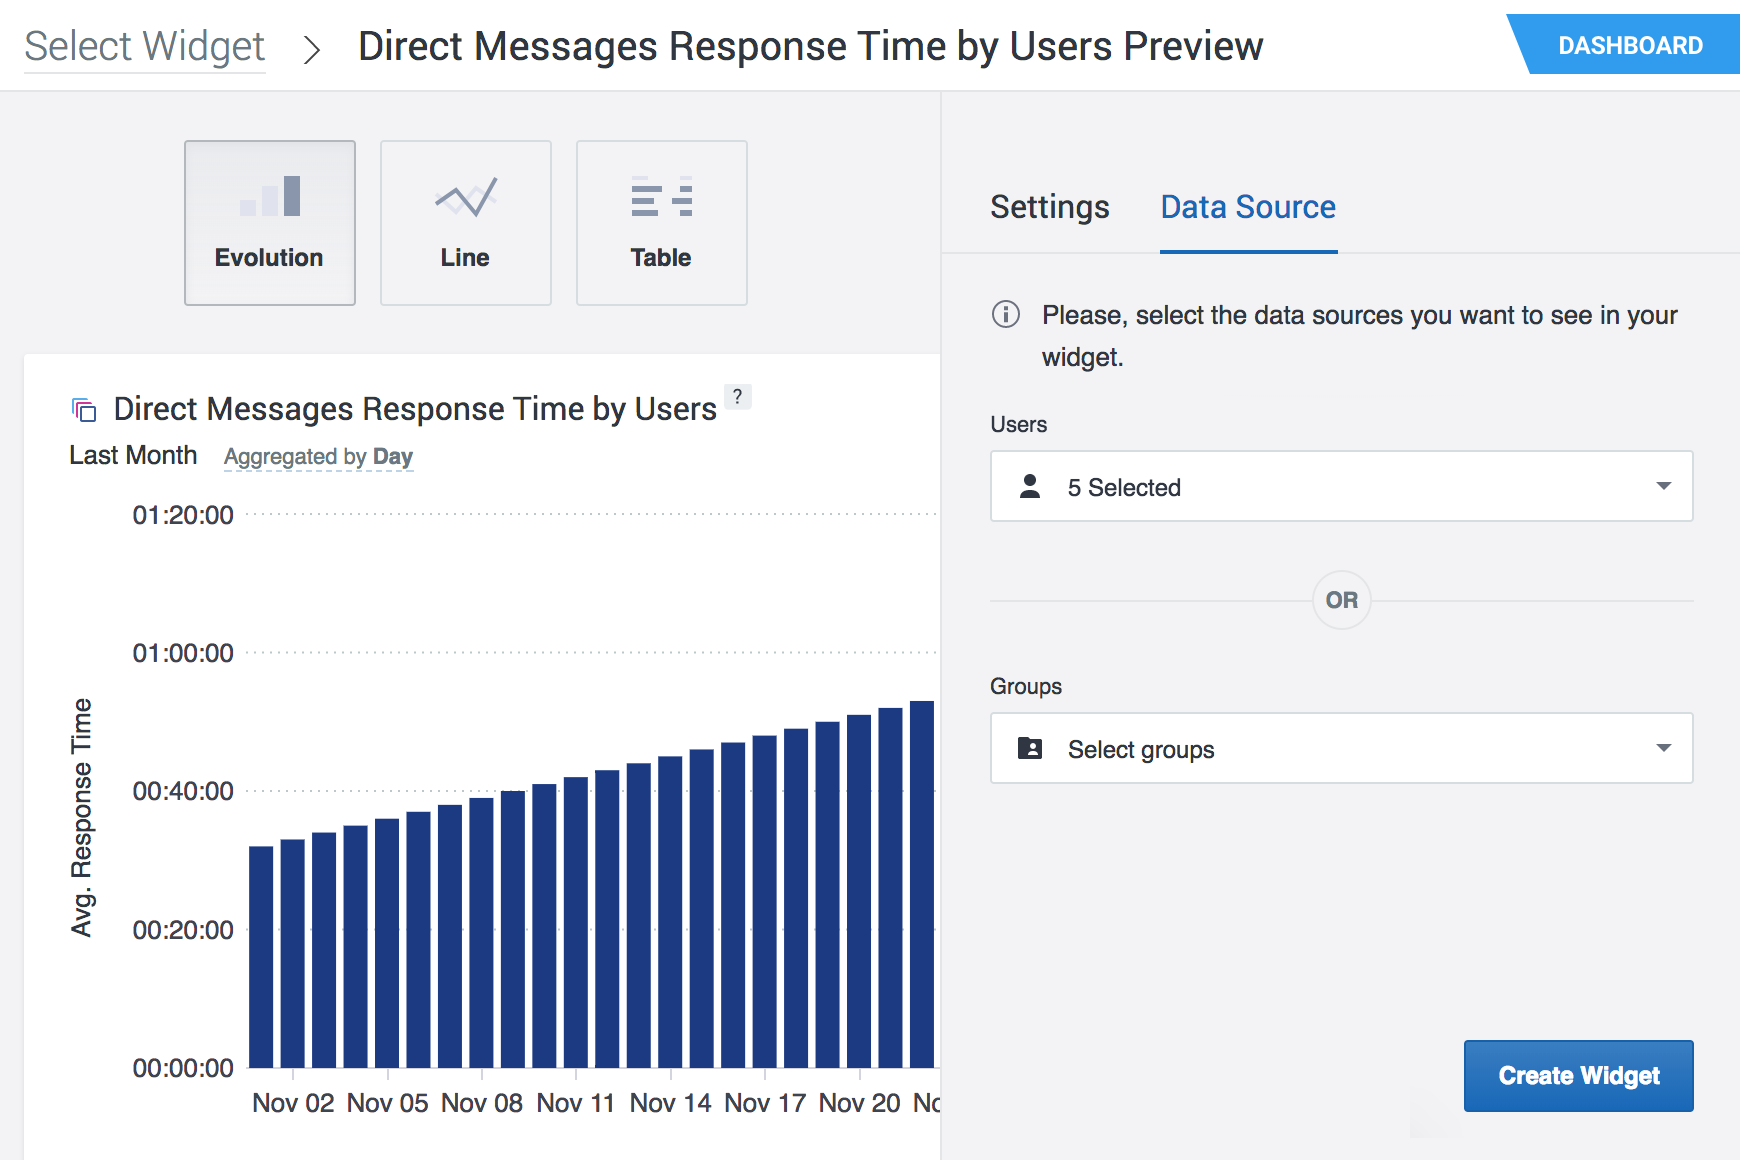 Socialbakers_Dashboard_Community_Reporting_Direct_Messages_Response_Time_by_Users_2x.png